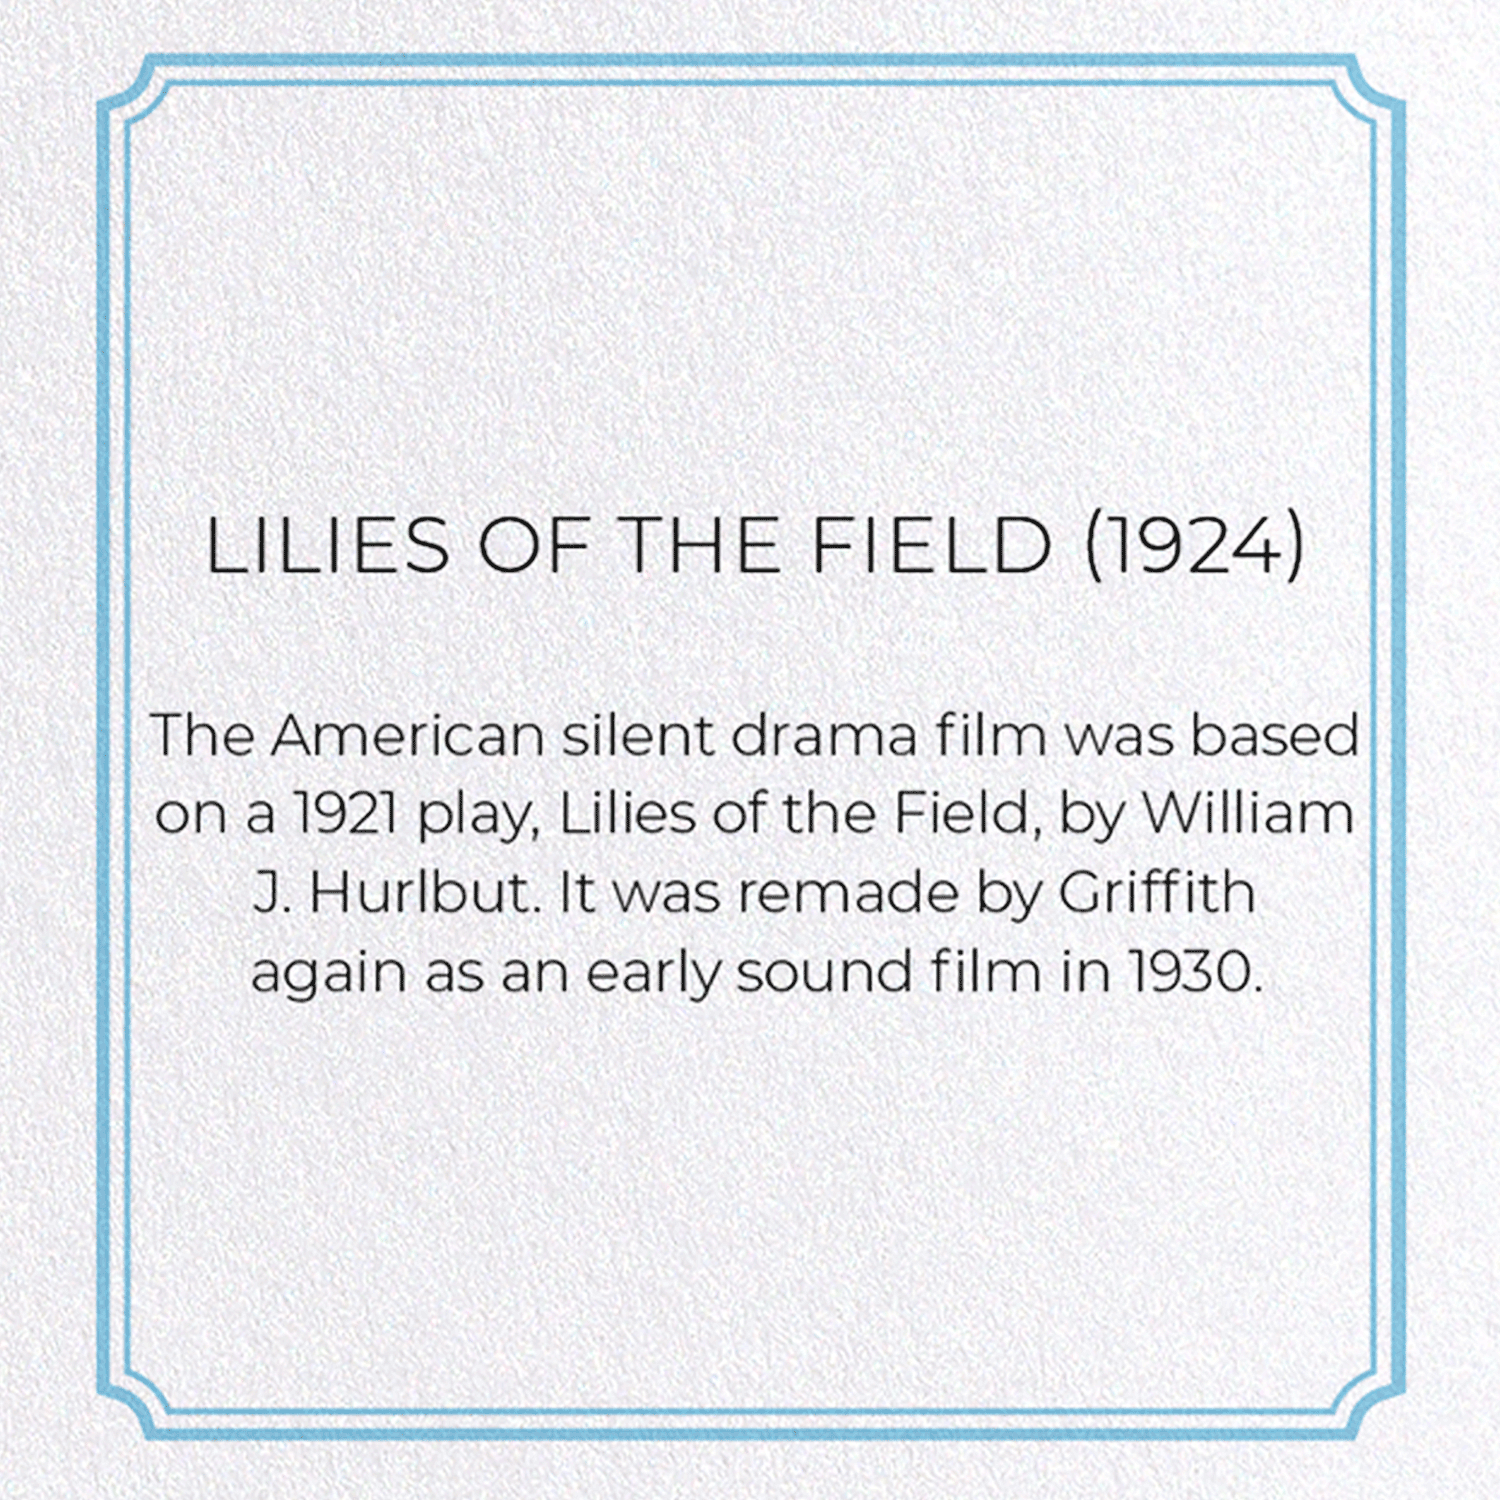 LILIES OF THE FIELD (1924)